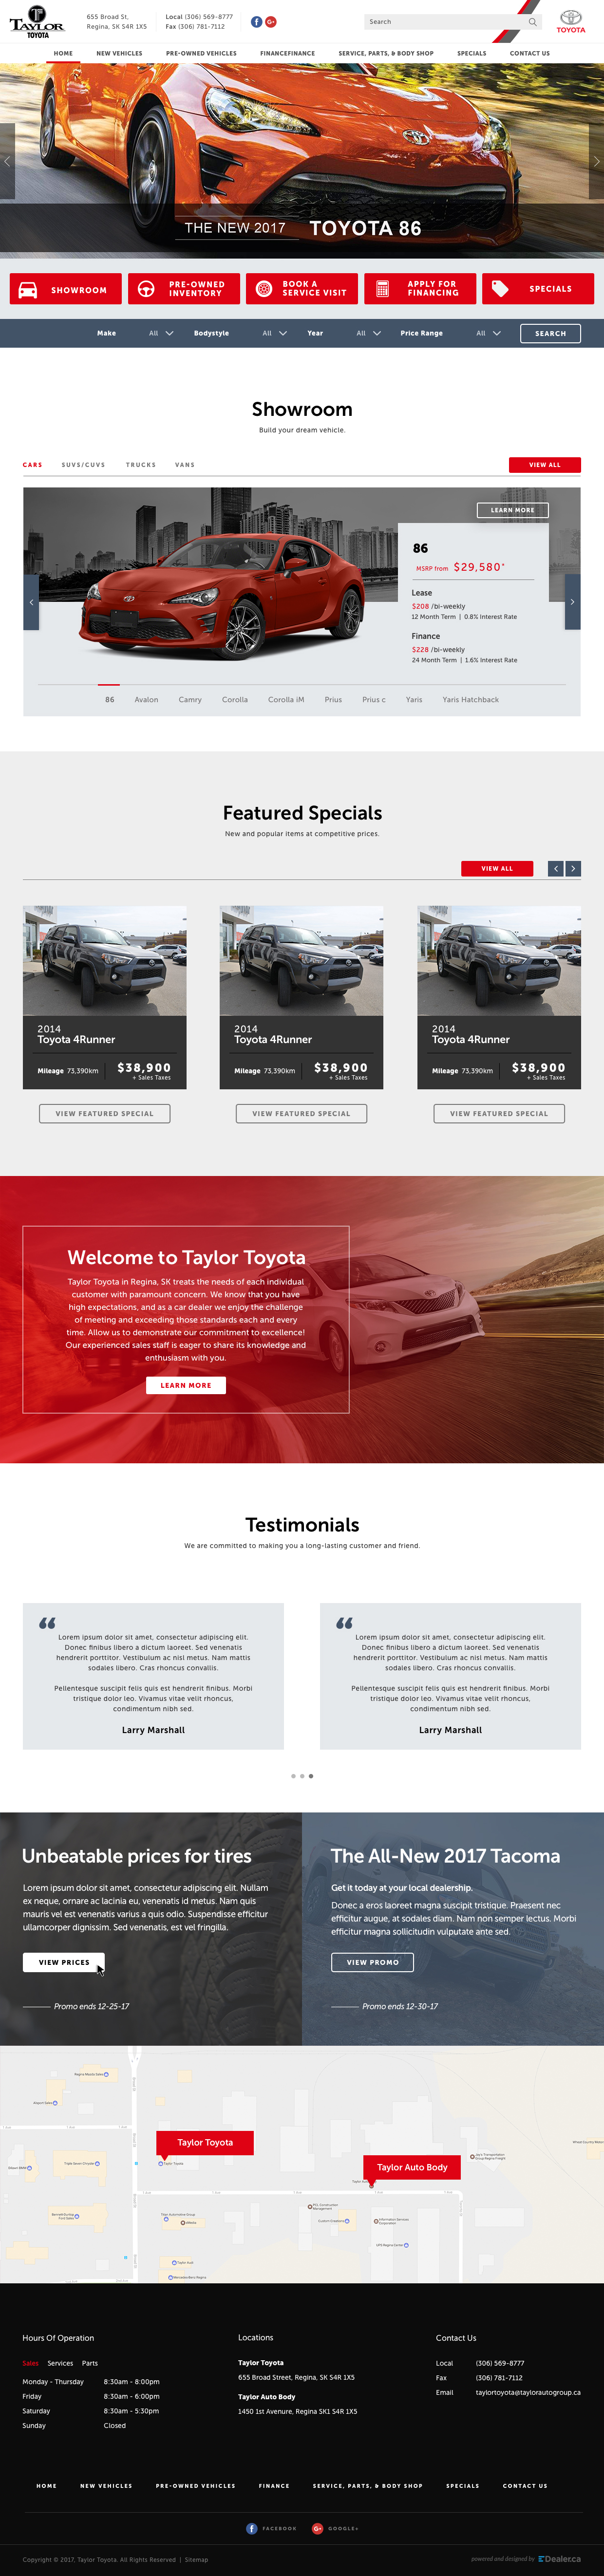 dealership in state dallas art a that january our toyota few blog announce of brand excited the new million is just we opening be days htm will to dealer jan